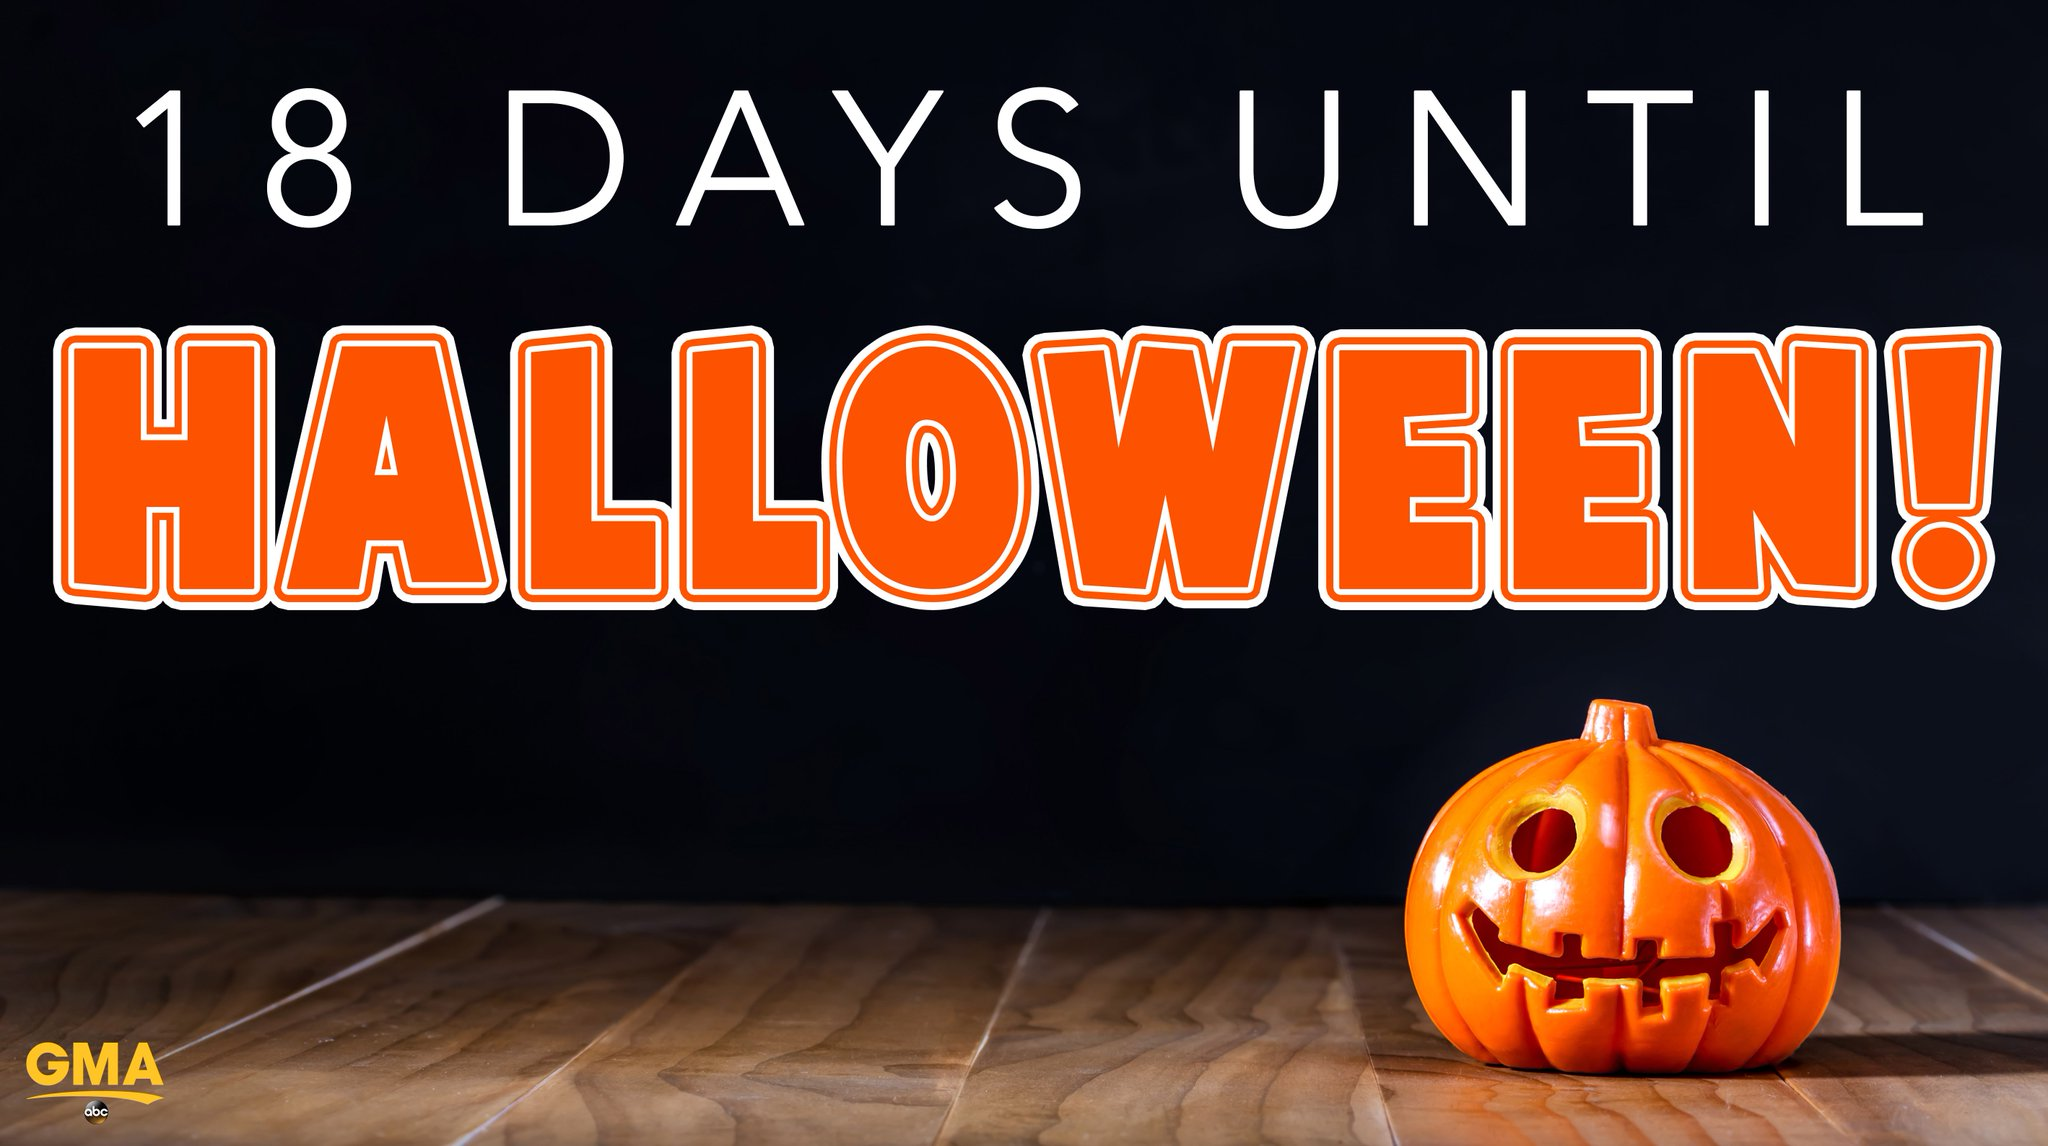 18 days until Halloween! �� https://t.co/McfJobuGHq